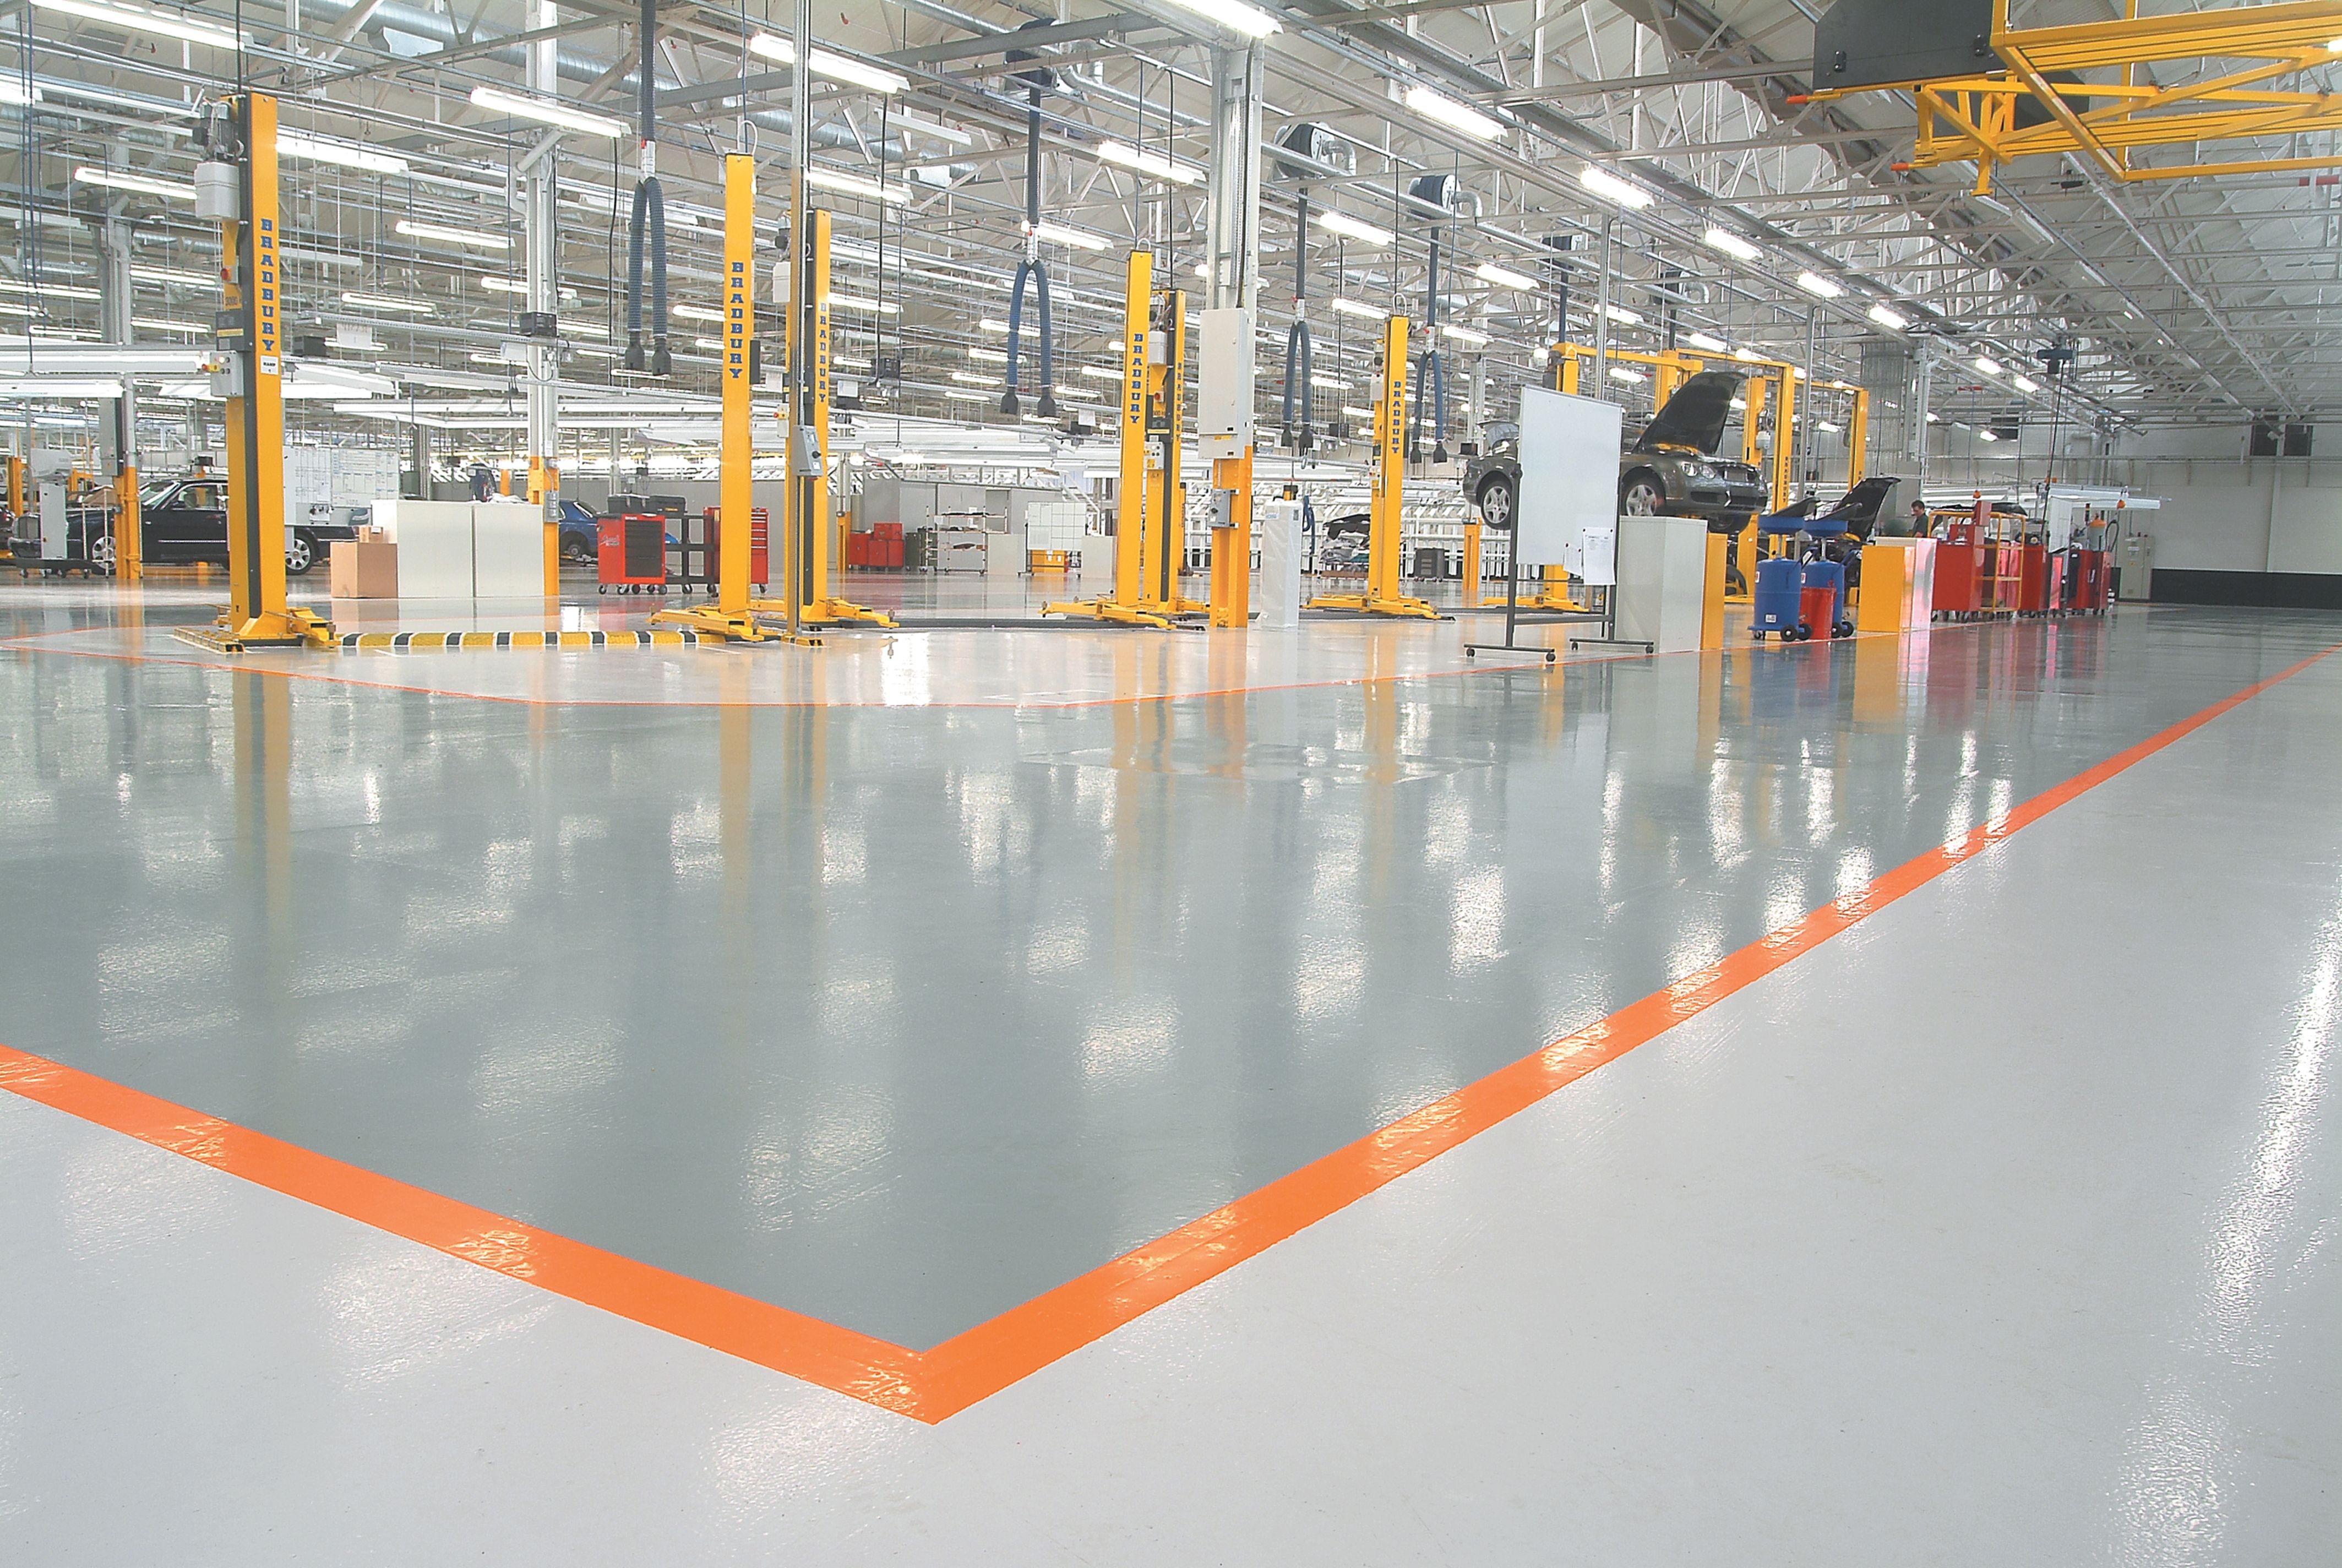 It s time to upgrade your Industrial Flooring with Ucrete HF floors that are